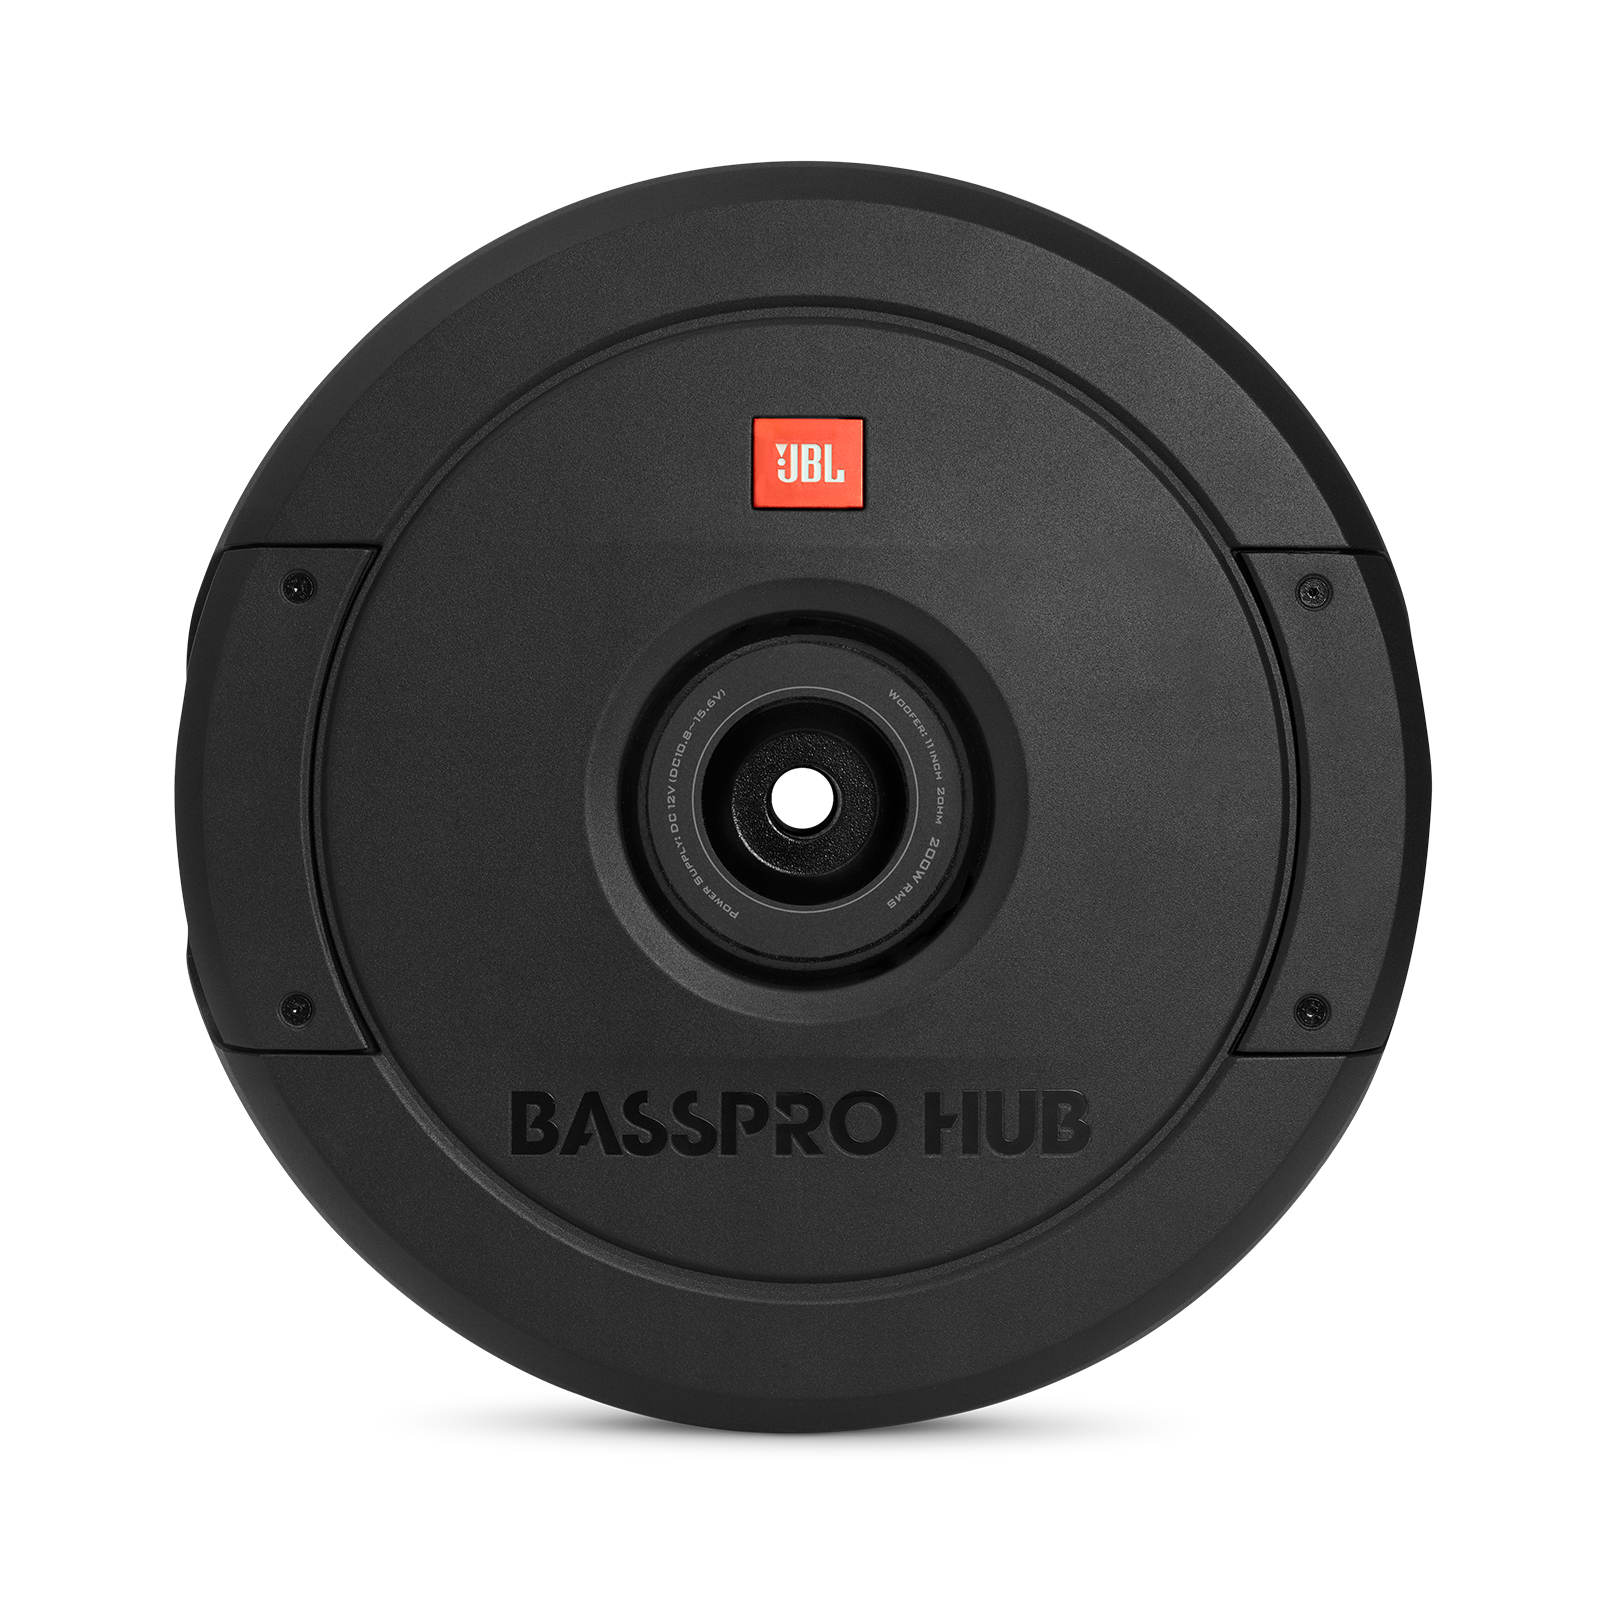 "JBL BassPro Hub - Black - 11"" (279mm) Spare tire subwoofer with built-in 200W RMS amplifier with remote control. - Front"